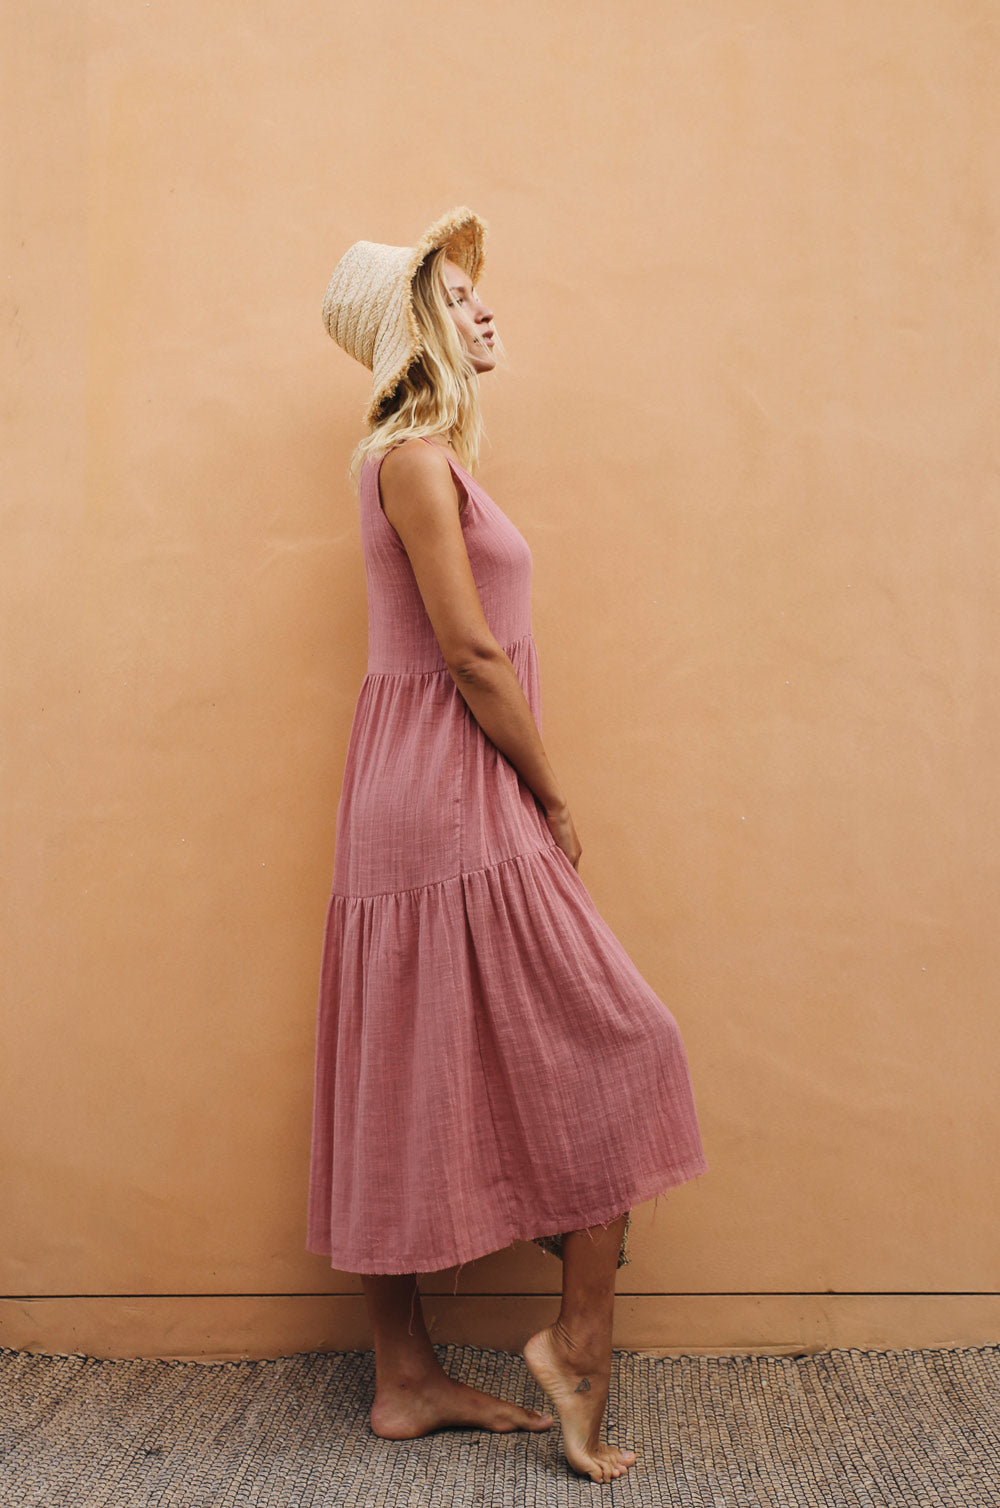 GREVILLEA Dress - dark blush cotton